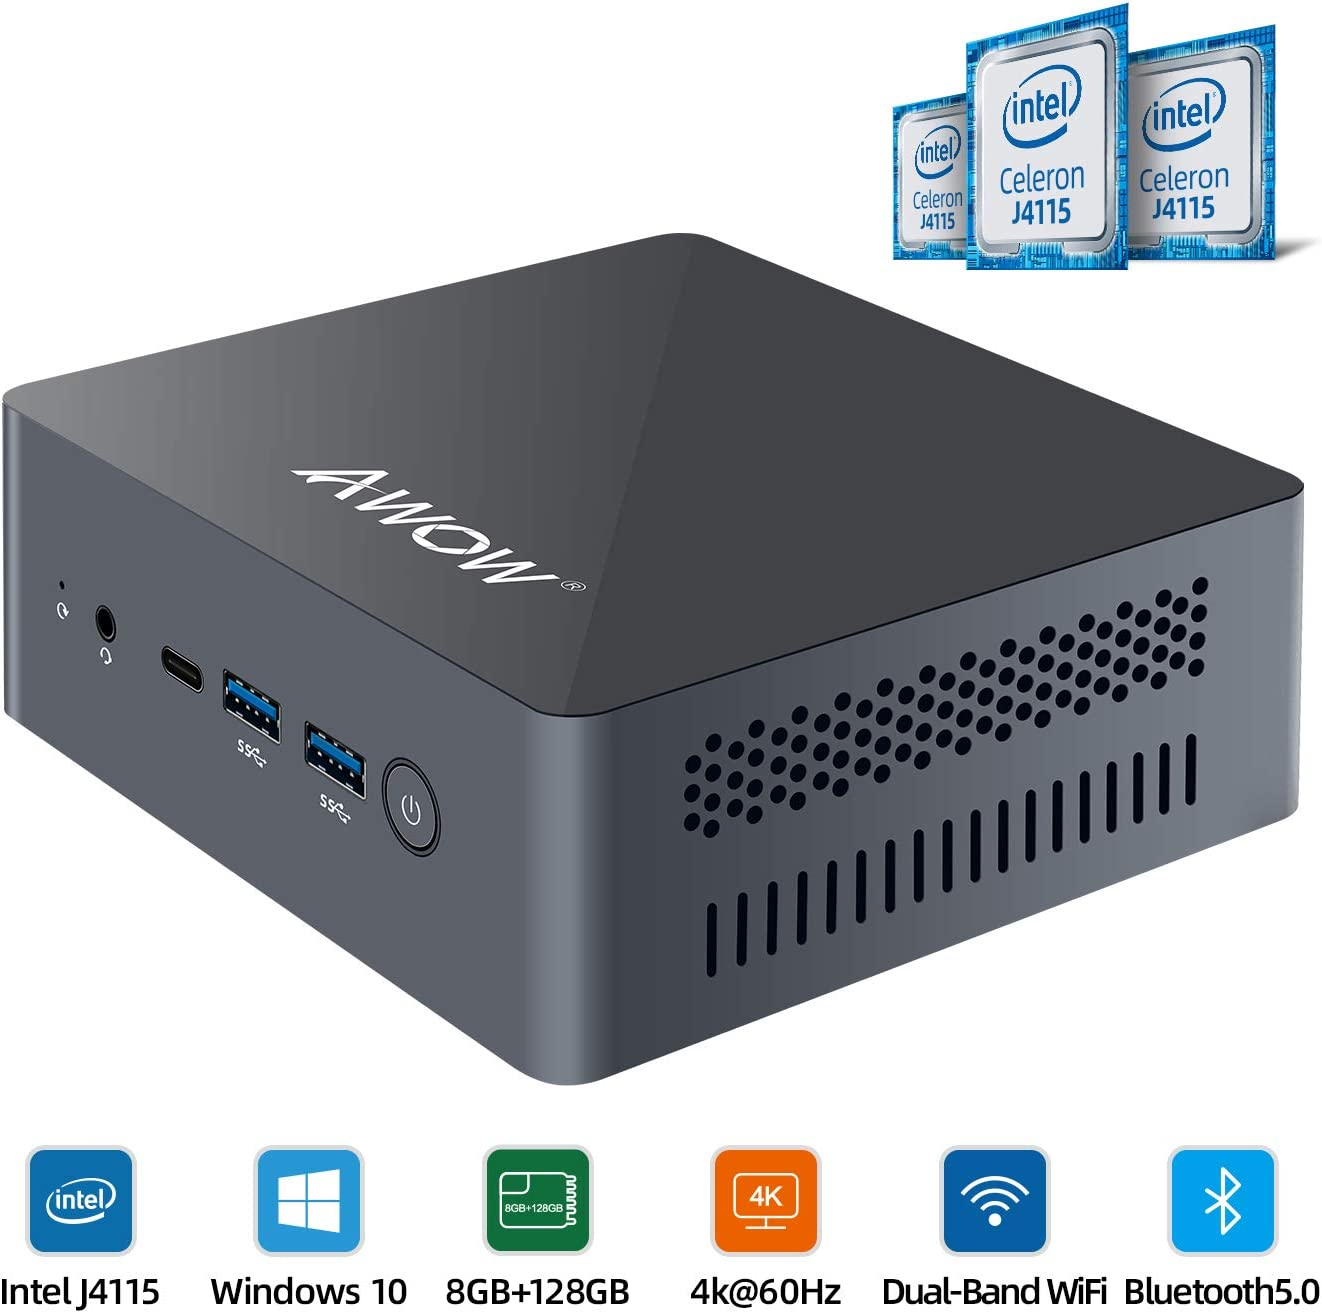 Mini PC AWOW Mini Desktop Computer Windows 10 Intel Celeron J4115 with 8GB DDR4/ NVMe M.2 128GB SSD with Triple Display 4K@60Hz,Extended SSD 2TB, Dual Band WiFi,HDMI2,USB4,BT5.0,Gigabit Ethernet